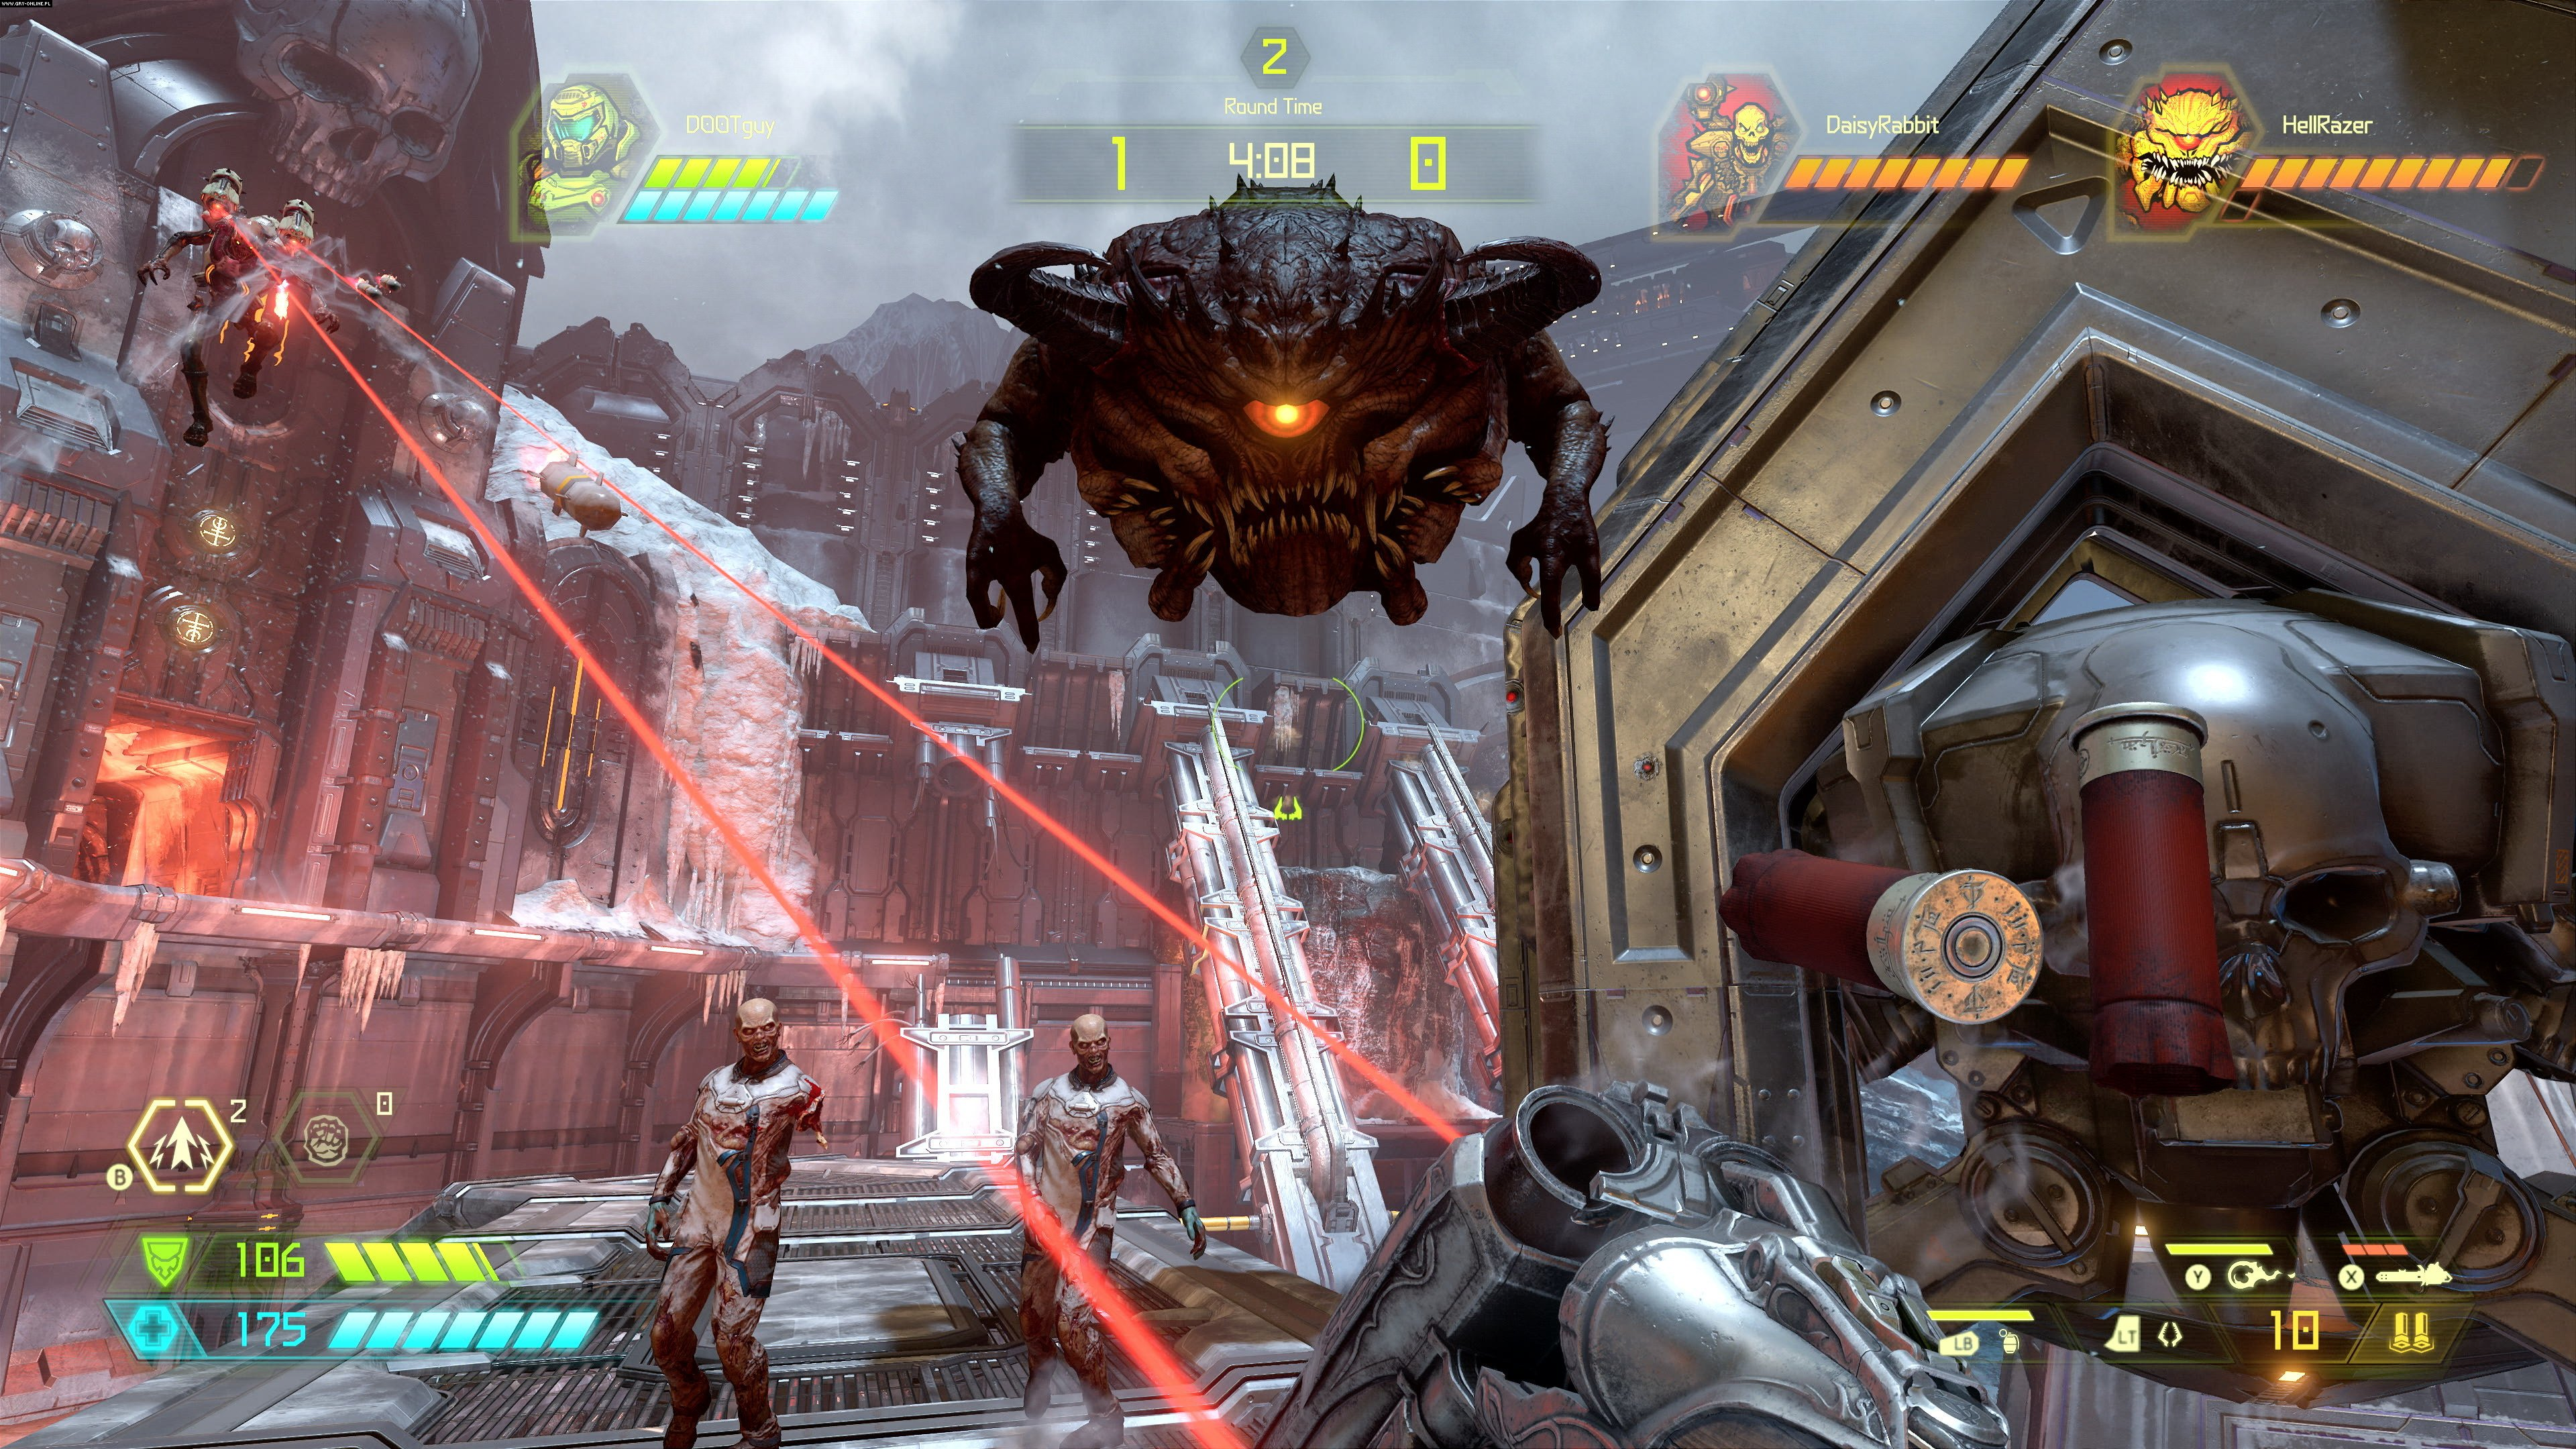 Doom Eternal PC, PS4, XONE, Switch Games Image 1/30, id Software, Bethesda Softworks